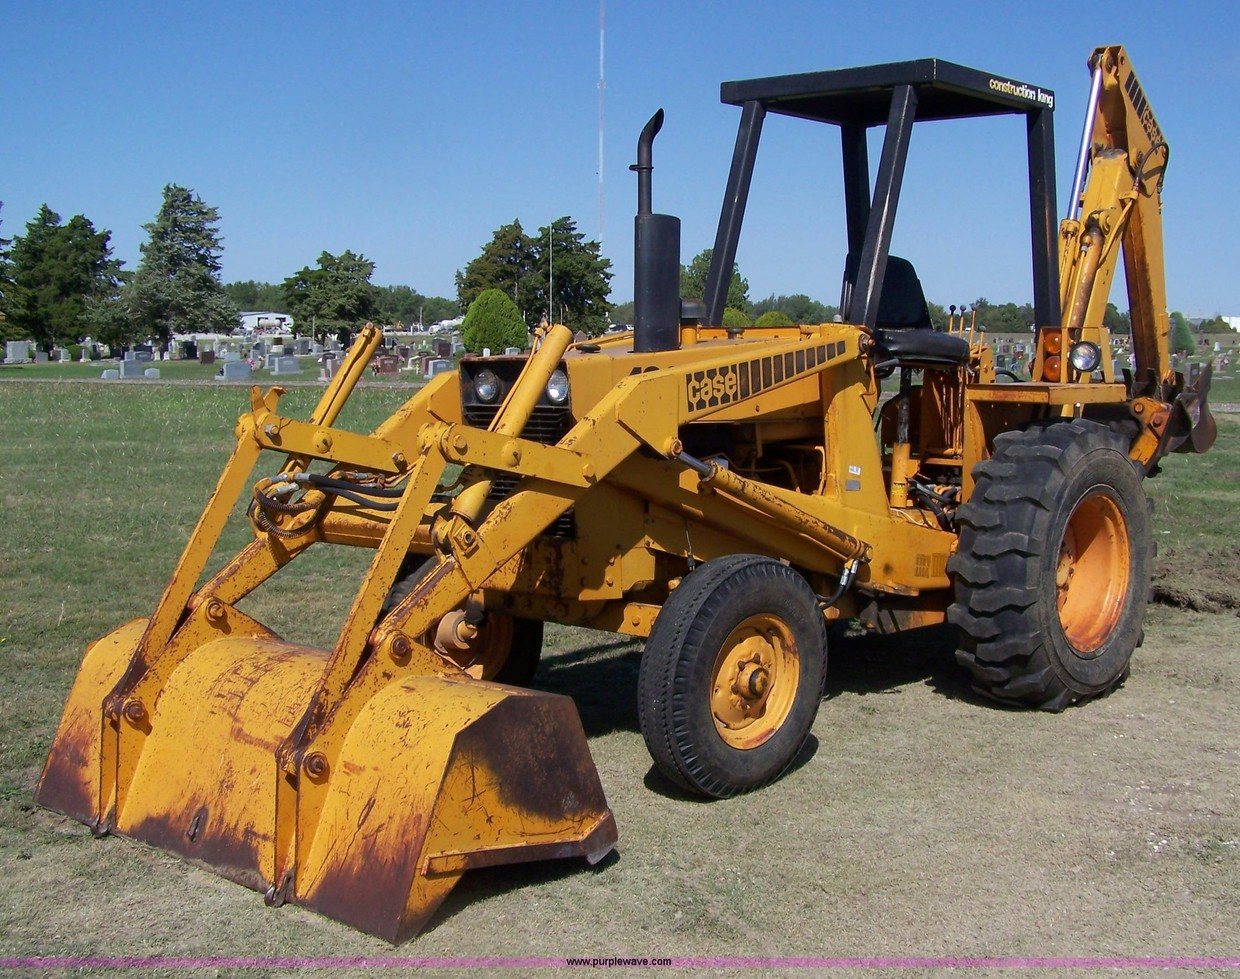 B Case Backhoe Wiring Diagram on case backhoe loader, case 540 backhoe, case 480e backhoe, case backhoe buckets, case 480c backhoe, case 580b backhoe, case 680g backhoe specs, case 480 backhoe weight, case 420 backhoe, case 680h backhoe, case 580c backhoe, case 430 backhoe, case 530ck backhoe, case backhoe tires, case 580e backhoe, case 580d backhoe, case 580 backhoe, case backhoe cab, case 530 backhoe, case 480d backhoe,